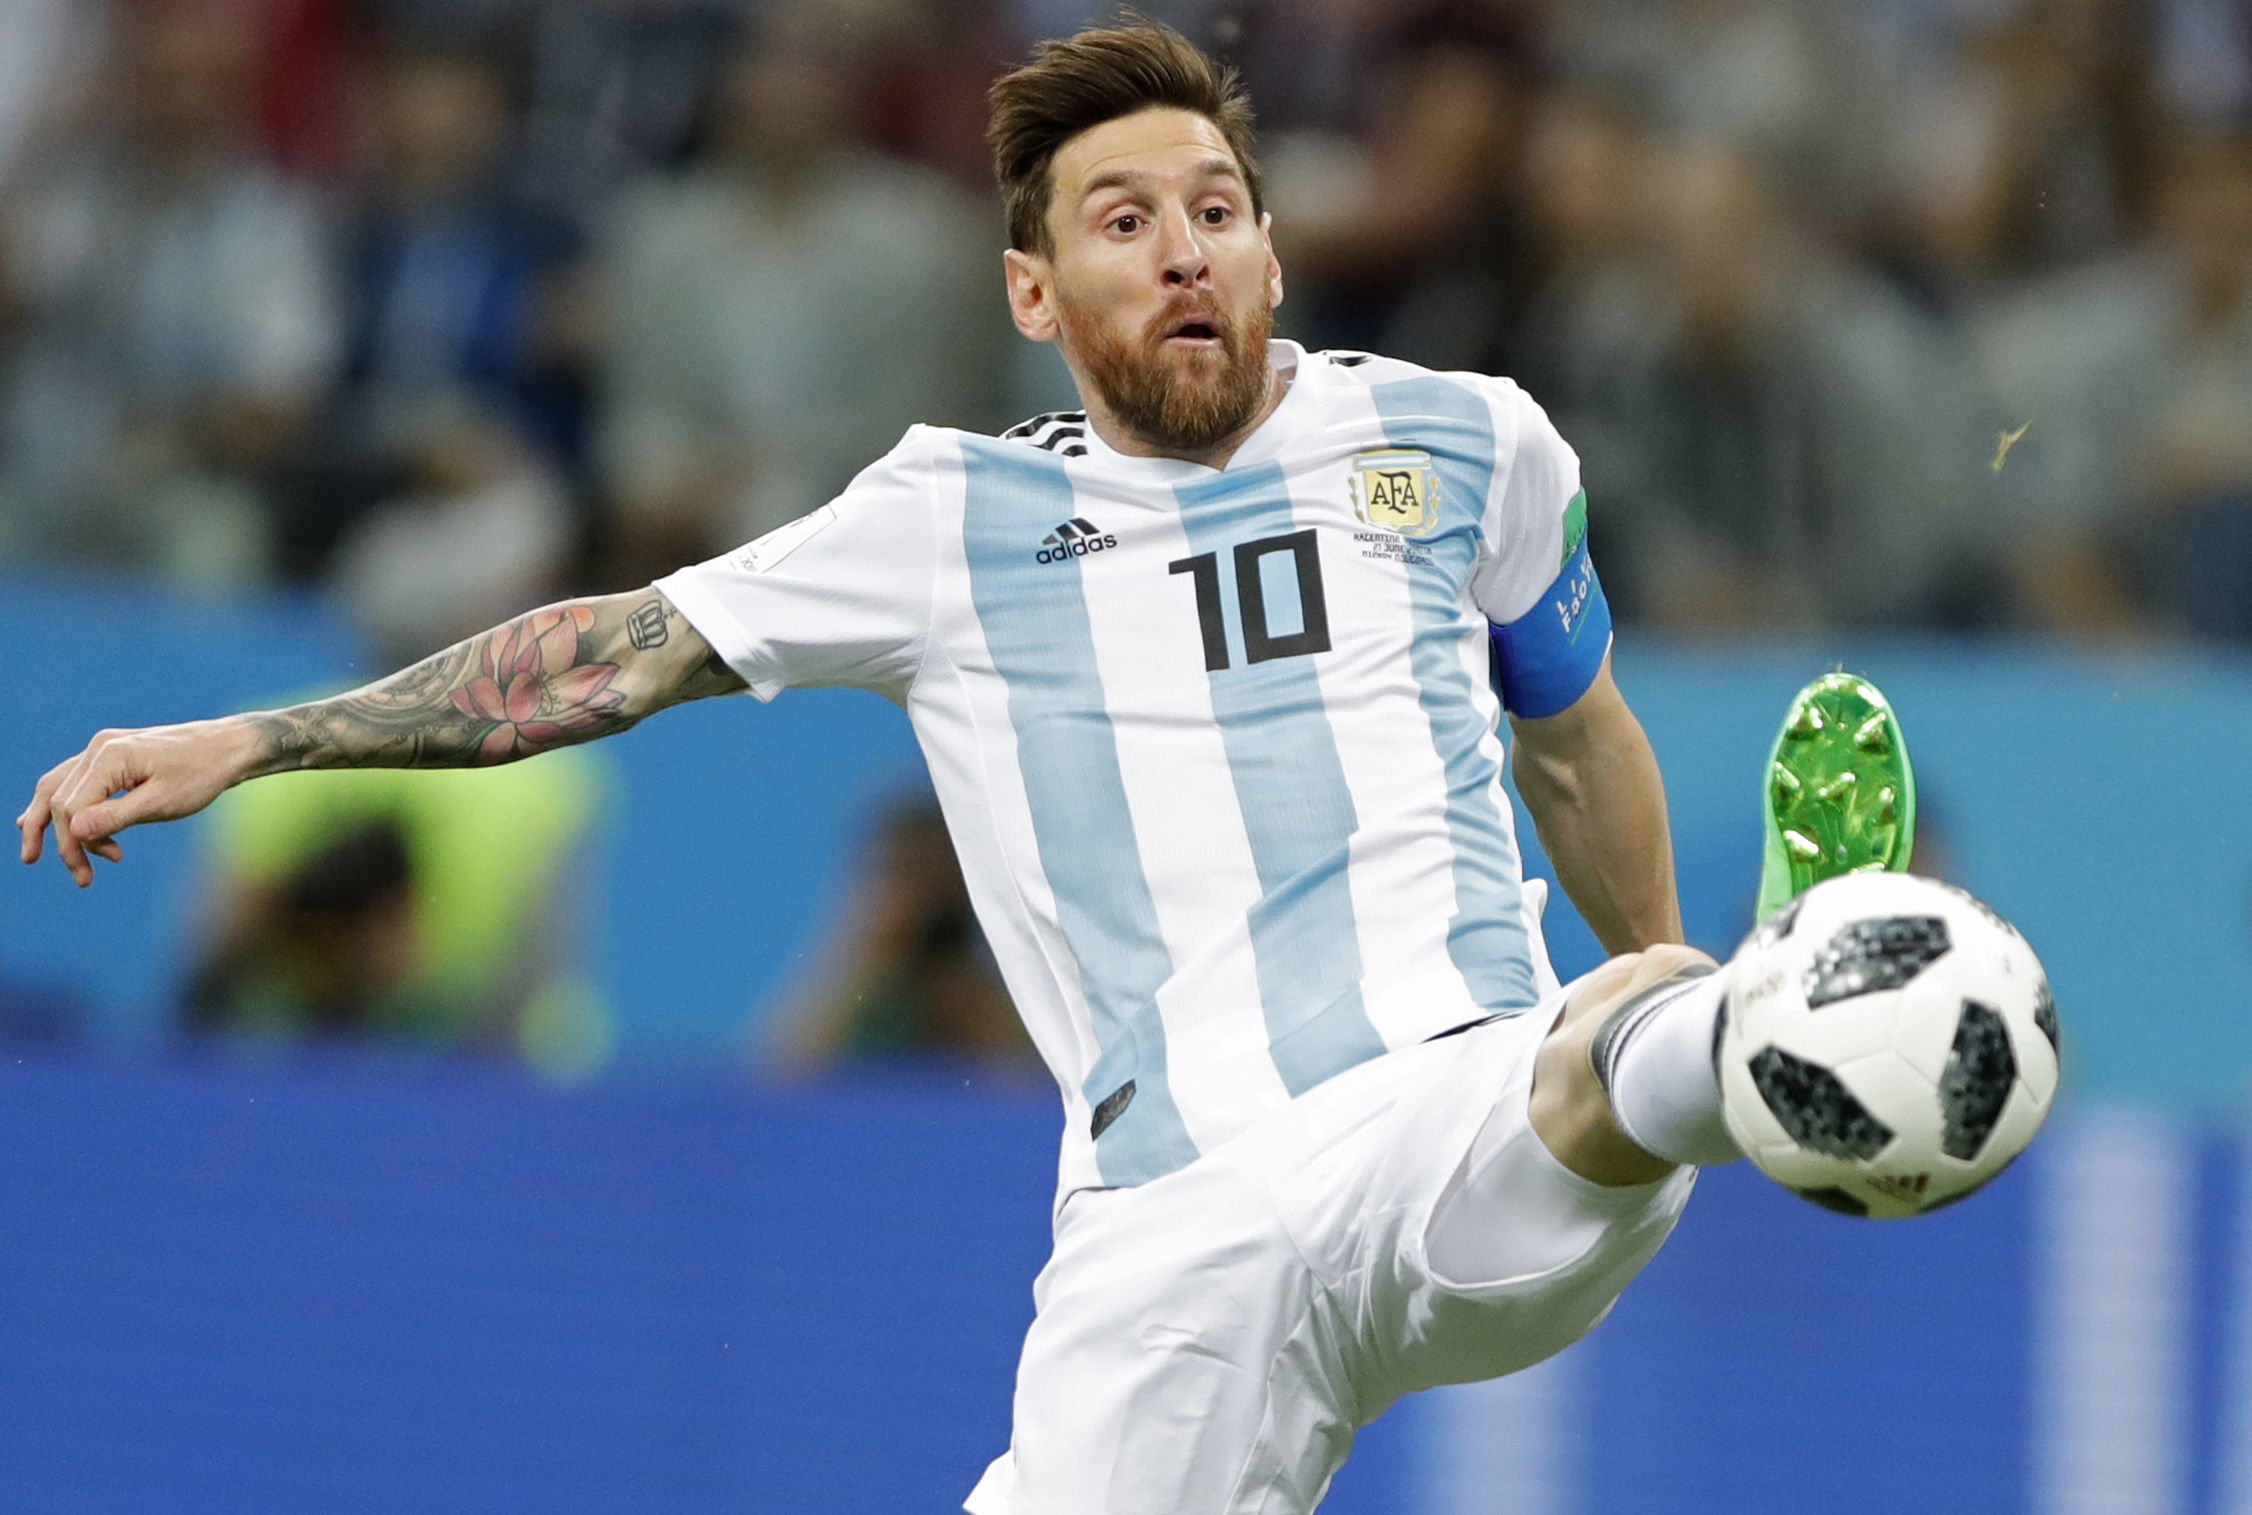 <div class='meta'><div class='origin-logo' data-origin='none'></div><span class='caption-text' data-credit='Ricardo Mazalan/AP Photo'>Argentina's Lionel Messi reaches for the ball during the group D match between Argentina and Croatia  in Nizhny Novgorod Stadium on Thursday, June 21, 2018.</span></div>